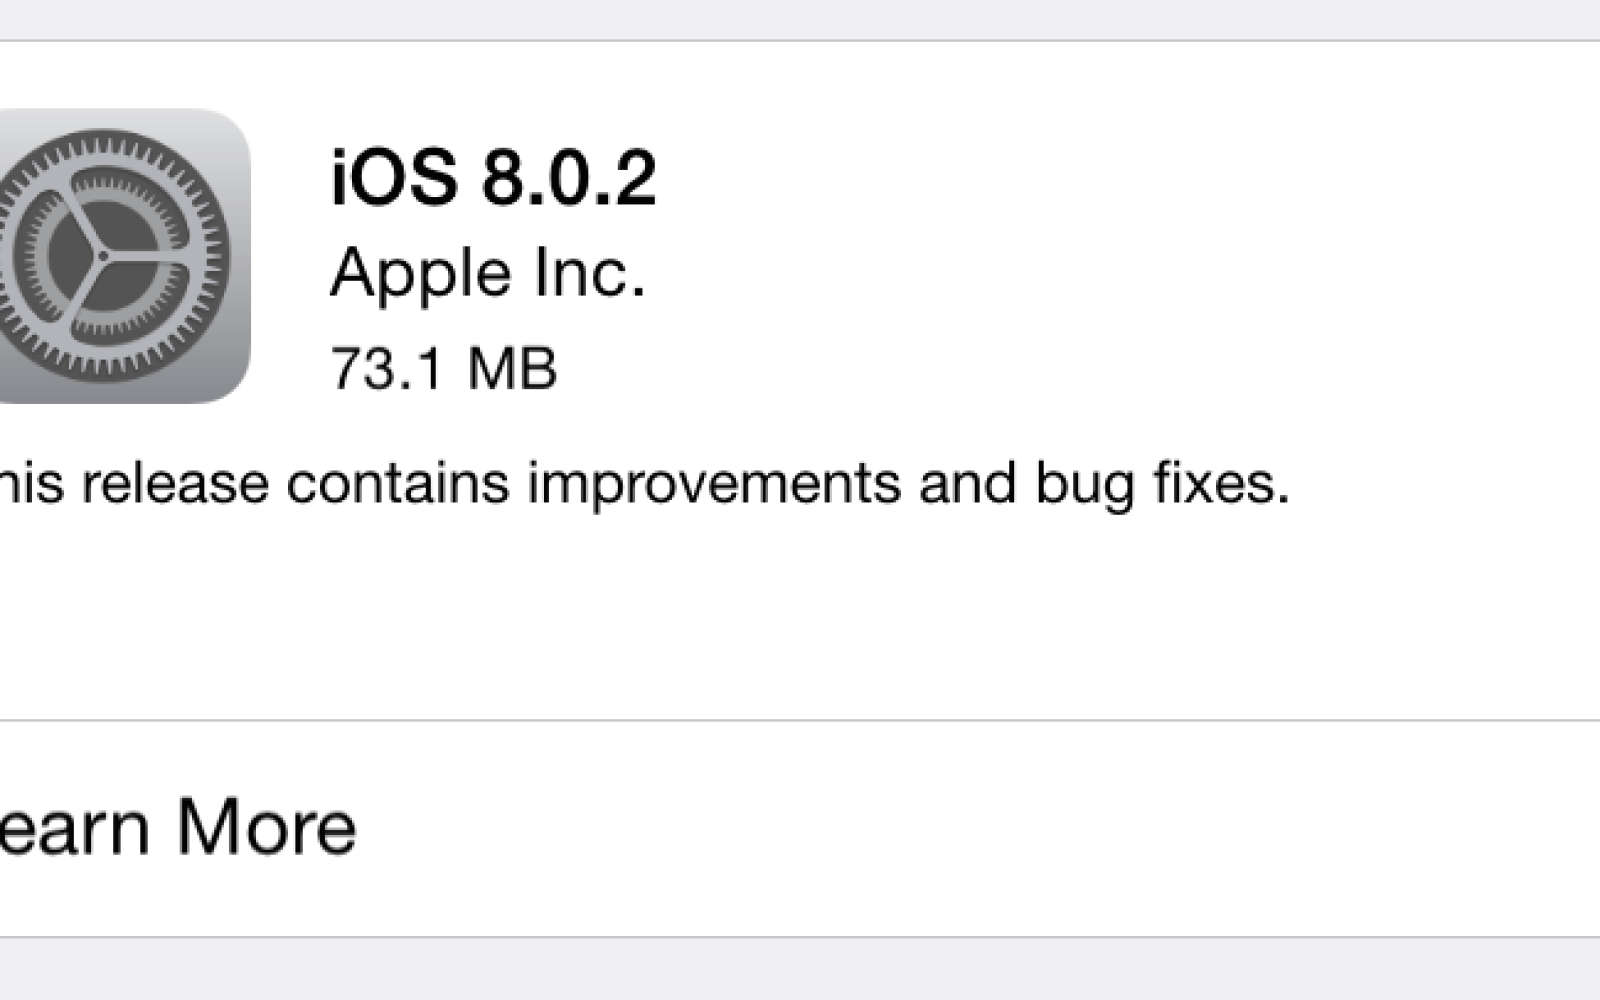 Apple releases iOS 8.0.2 to address cellular and Touch ID issues in previous update